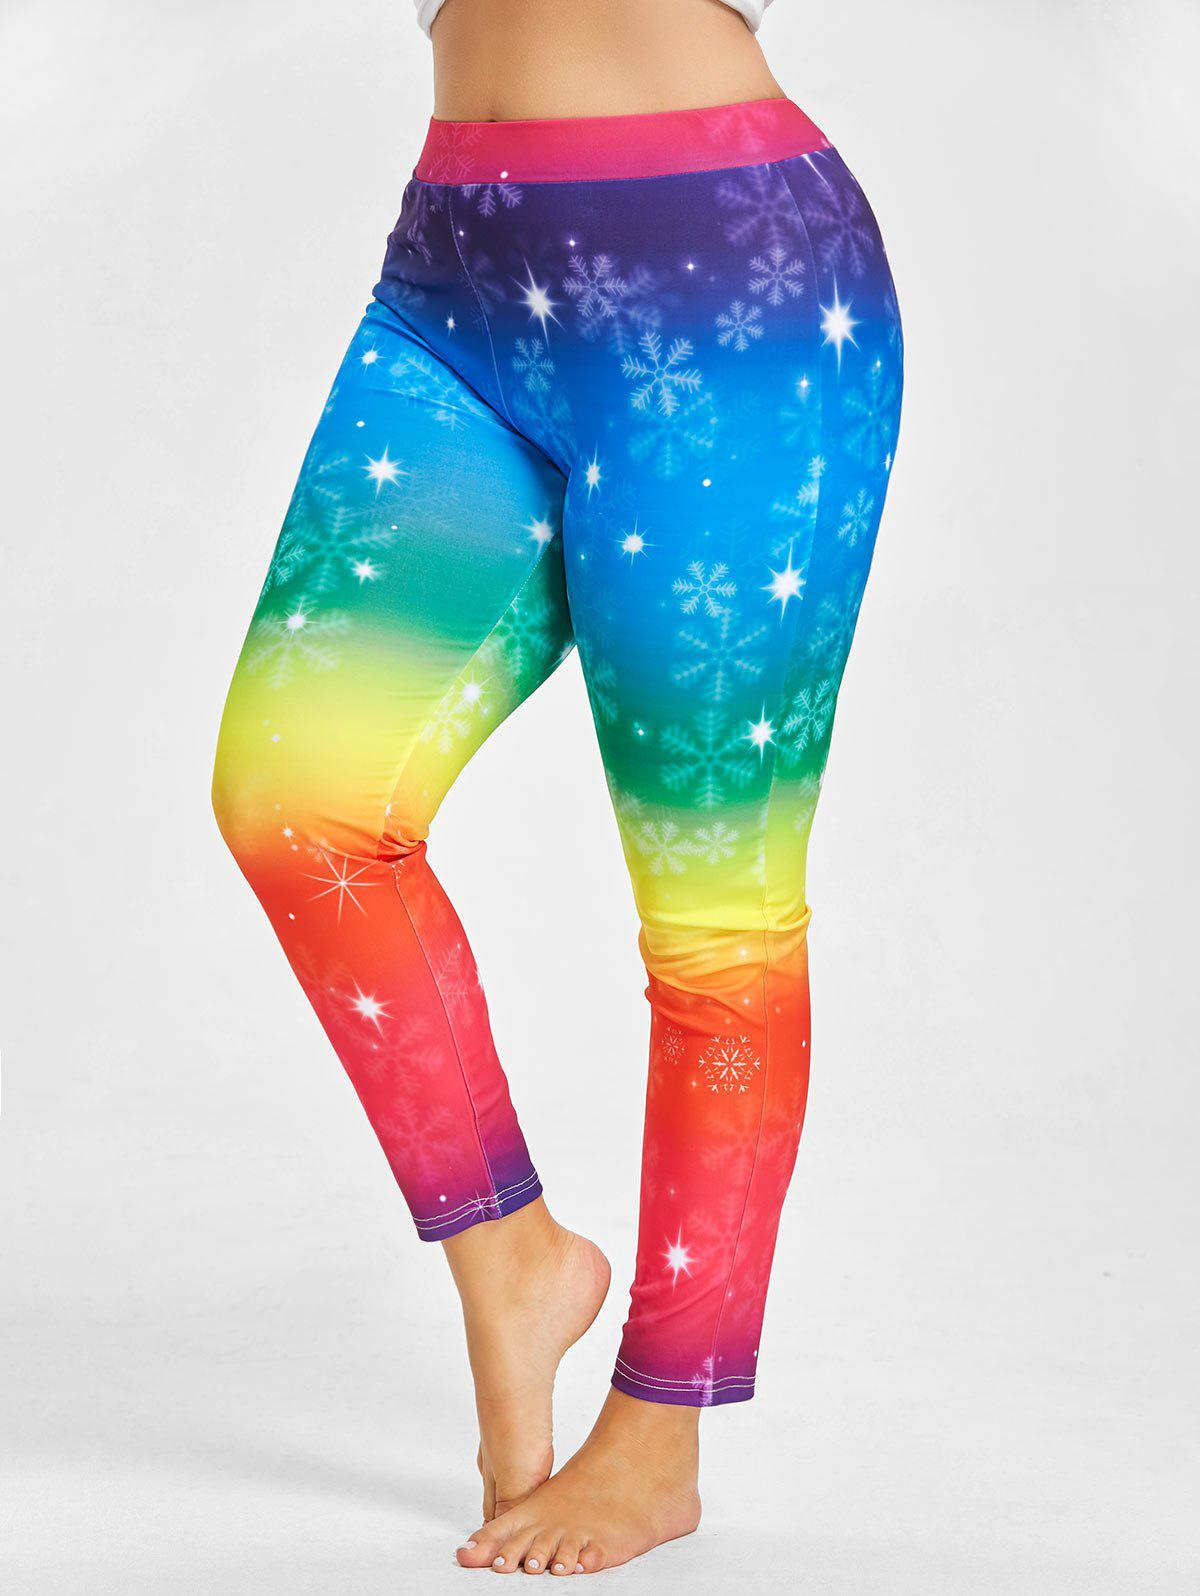 Plus Size Rainbow  Printed Christmas Snowflake LeggingsWOMEN<br><br>Size: 4XL; Color: BLUE; Style: Fashion; Length: Normal; Material: Polyester; Fit Type: Skinny; Waist Type: High; Closure Type: Elastic Waist; Pattern Type: Print; Pant Style: Pencil Pants; Elasticity: Elastic; Weight: 0.2800kg; Package Contents: 1 x Leggings;